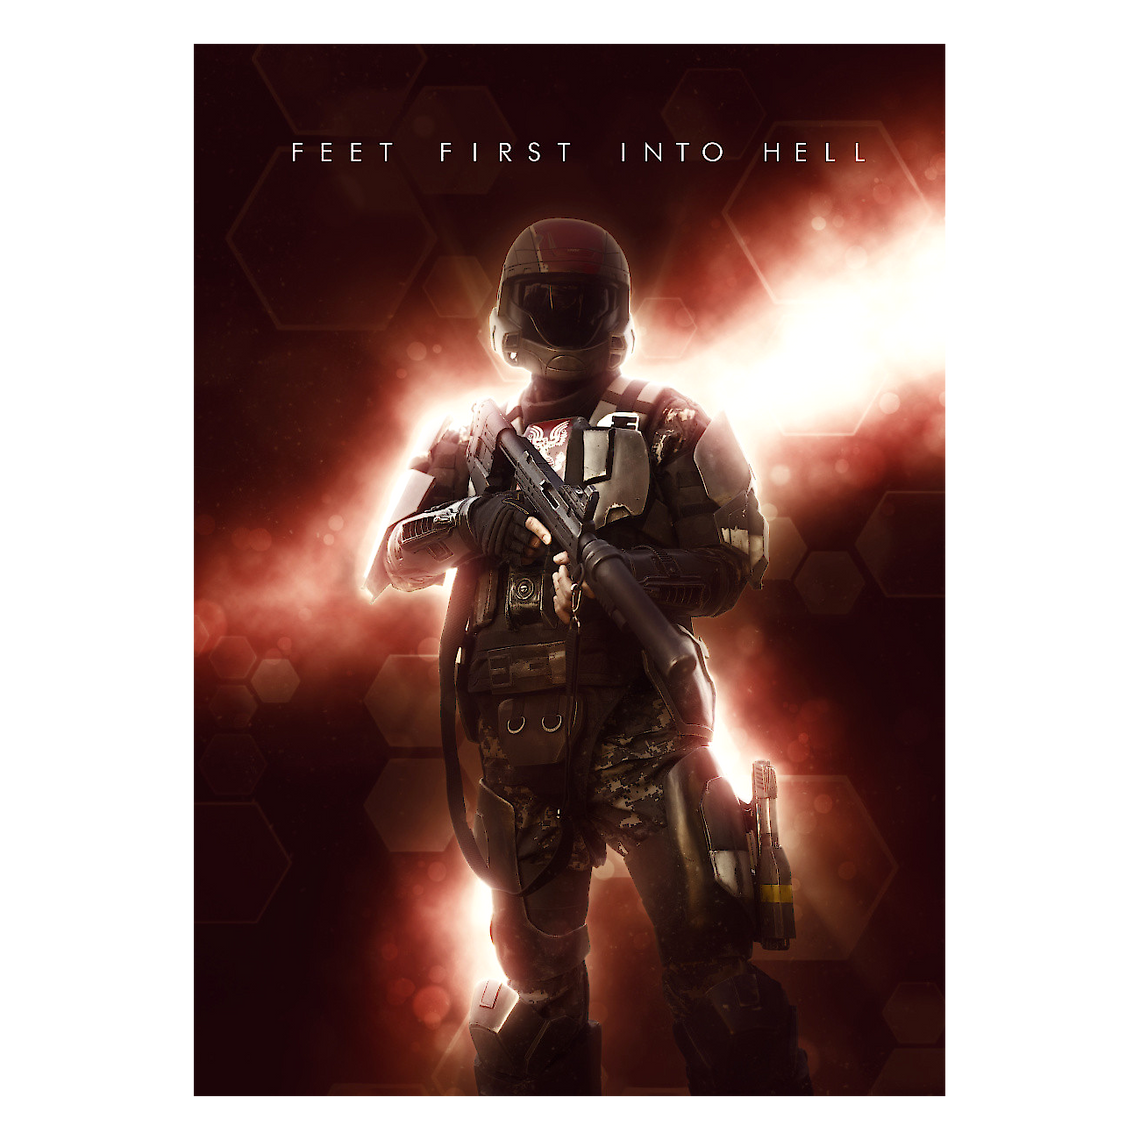 Halo Metallposter: Feet First into Hell